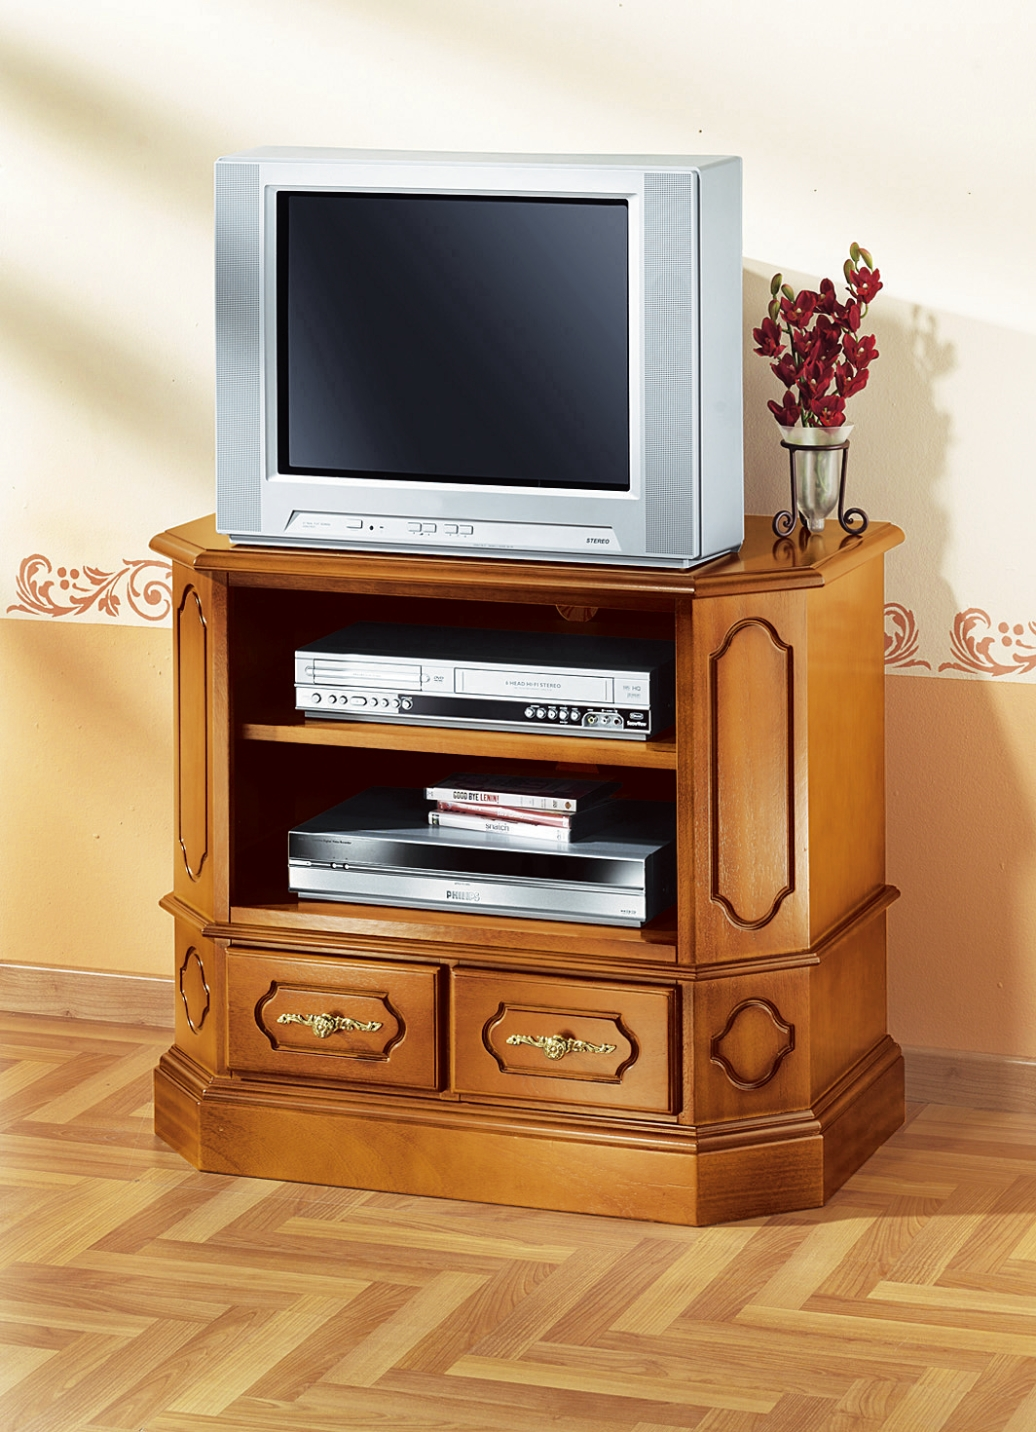 tv phonokommode in verschiedenen farben tv hifi m bel bader. Black Bedroom Furniture Sets. Home Design Ideas